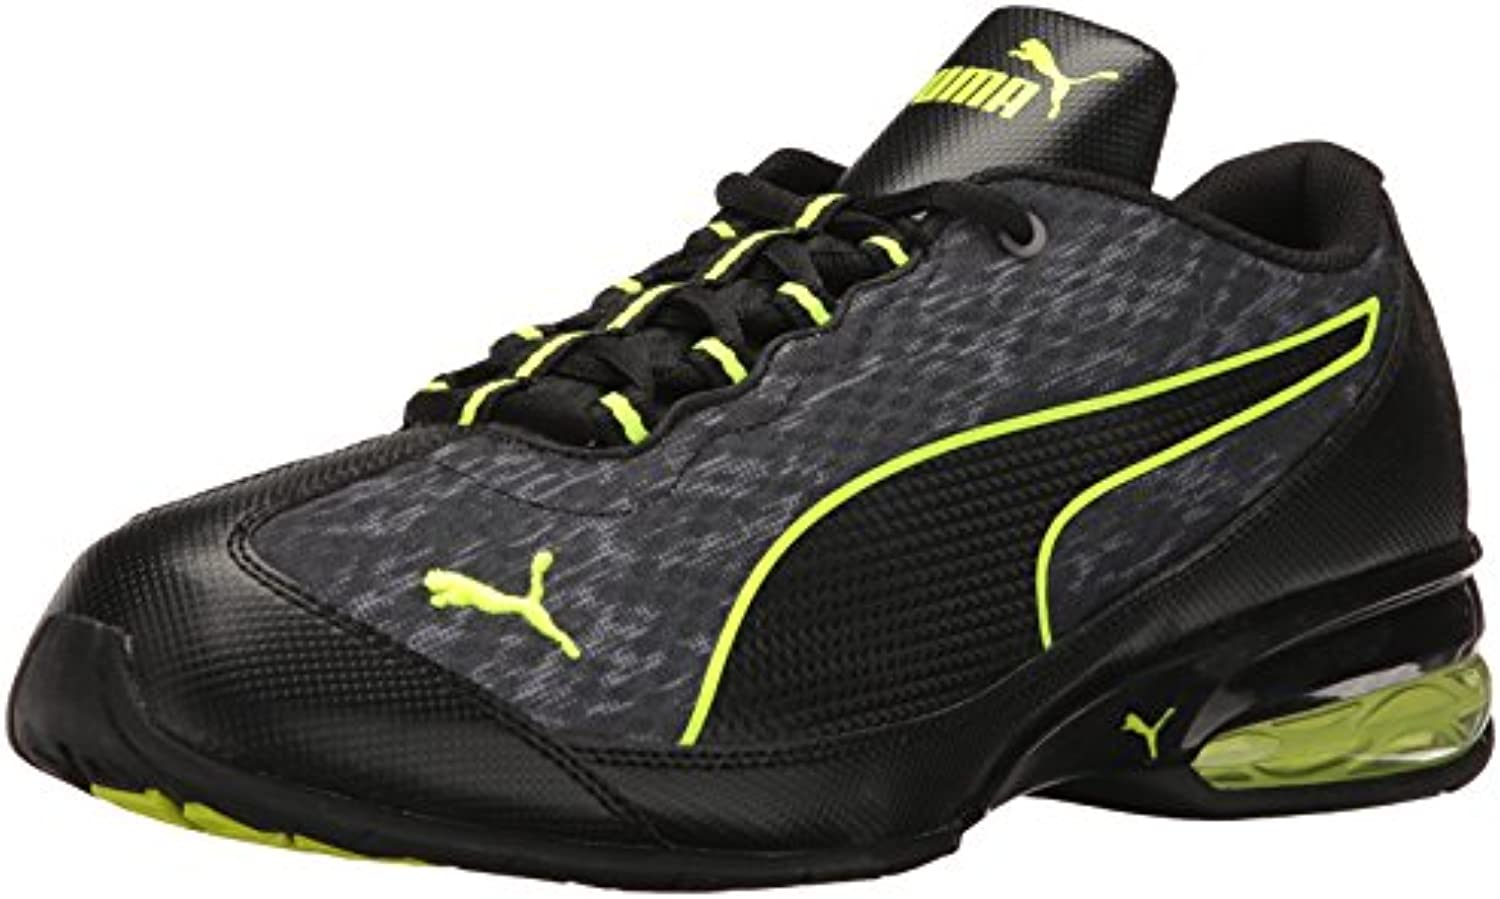 Puma Men's Reverb Graphic Cross Trainer Shoe